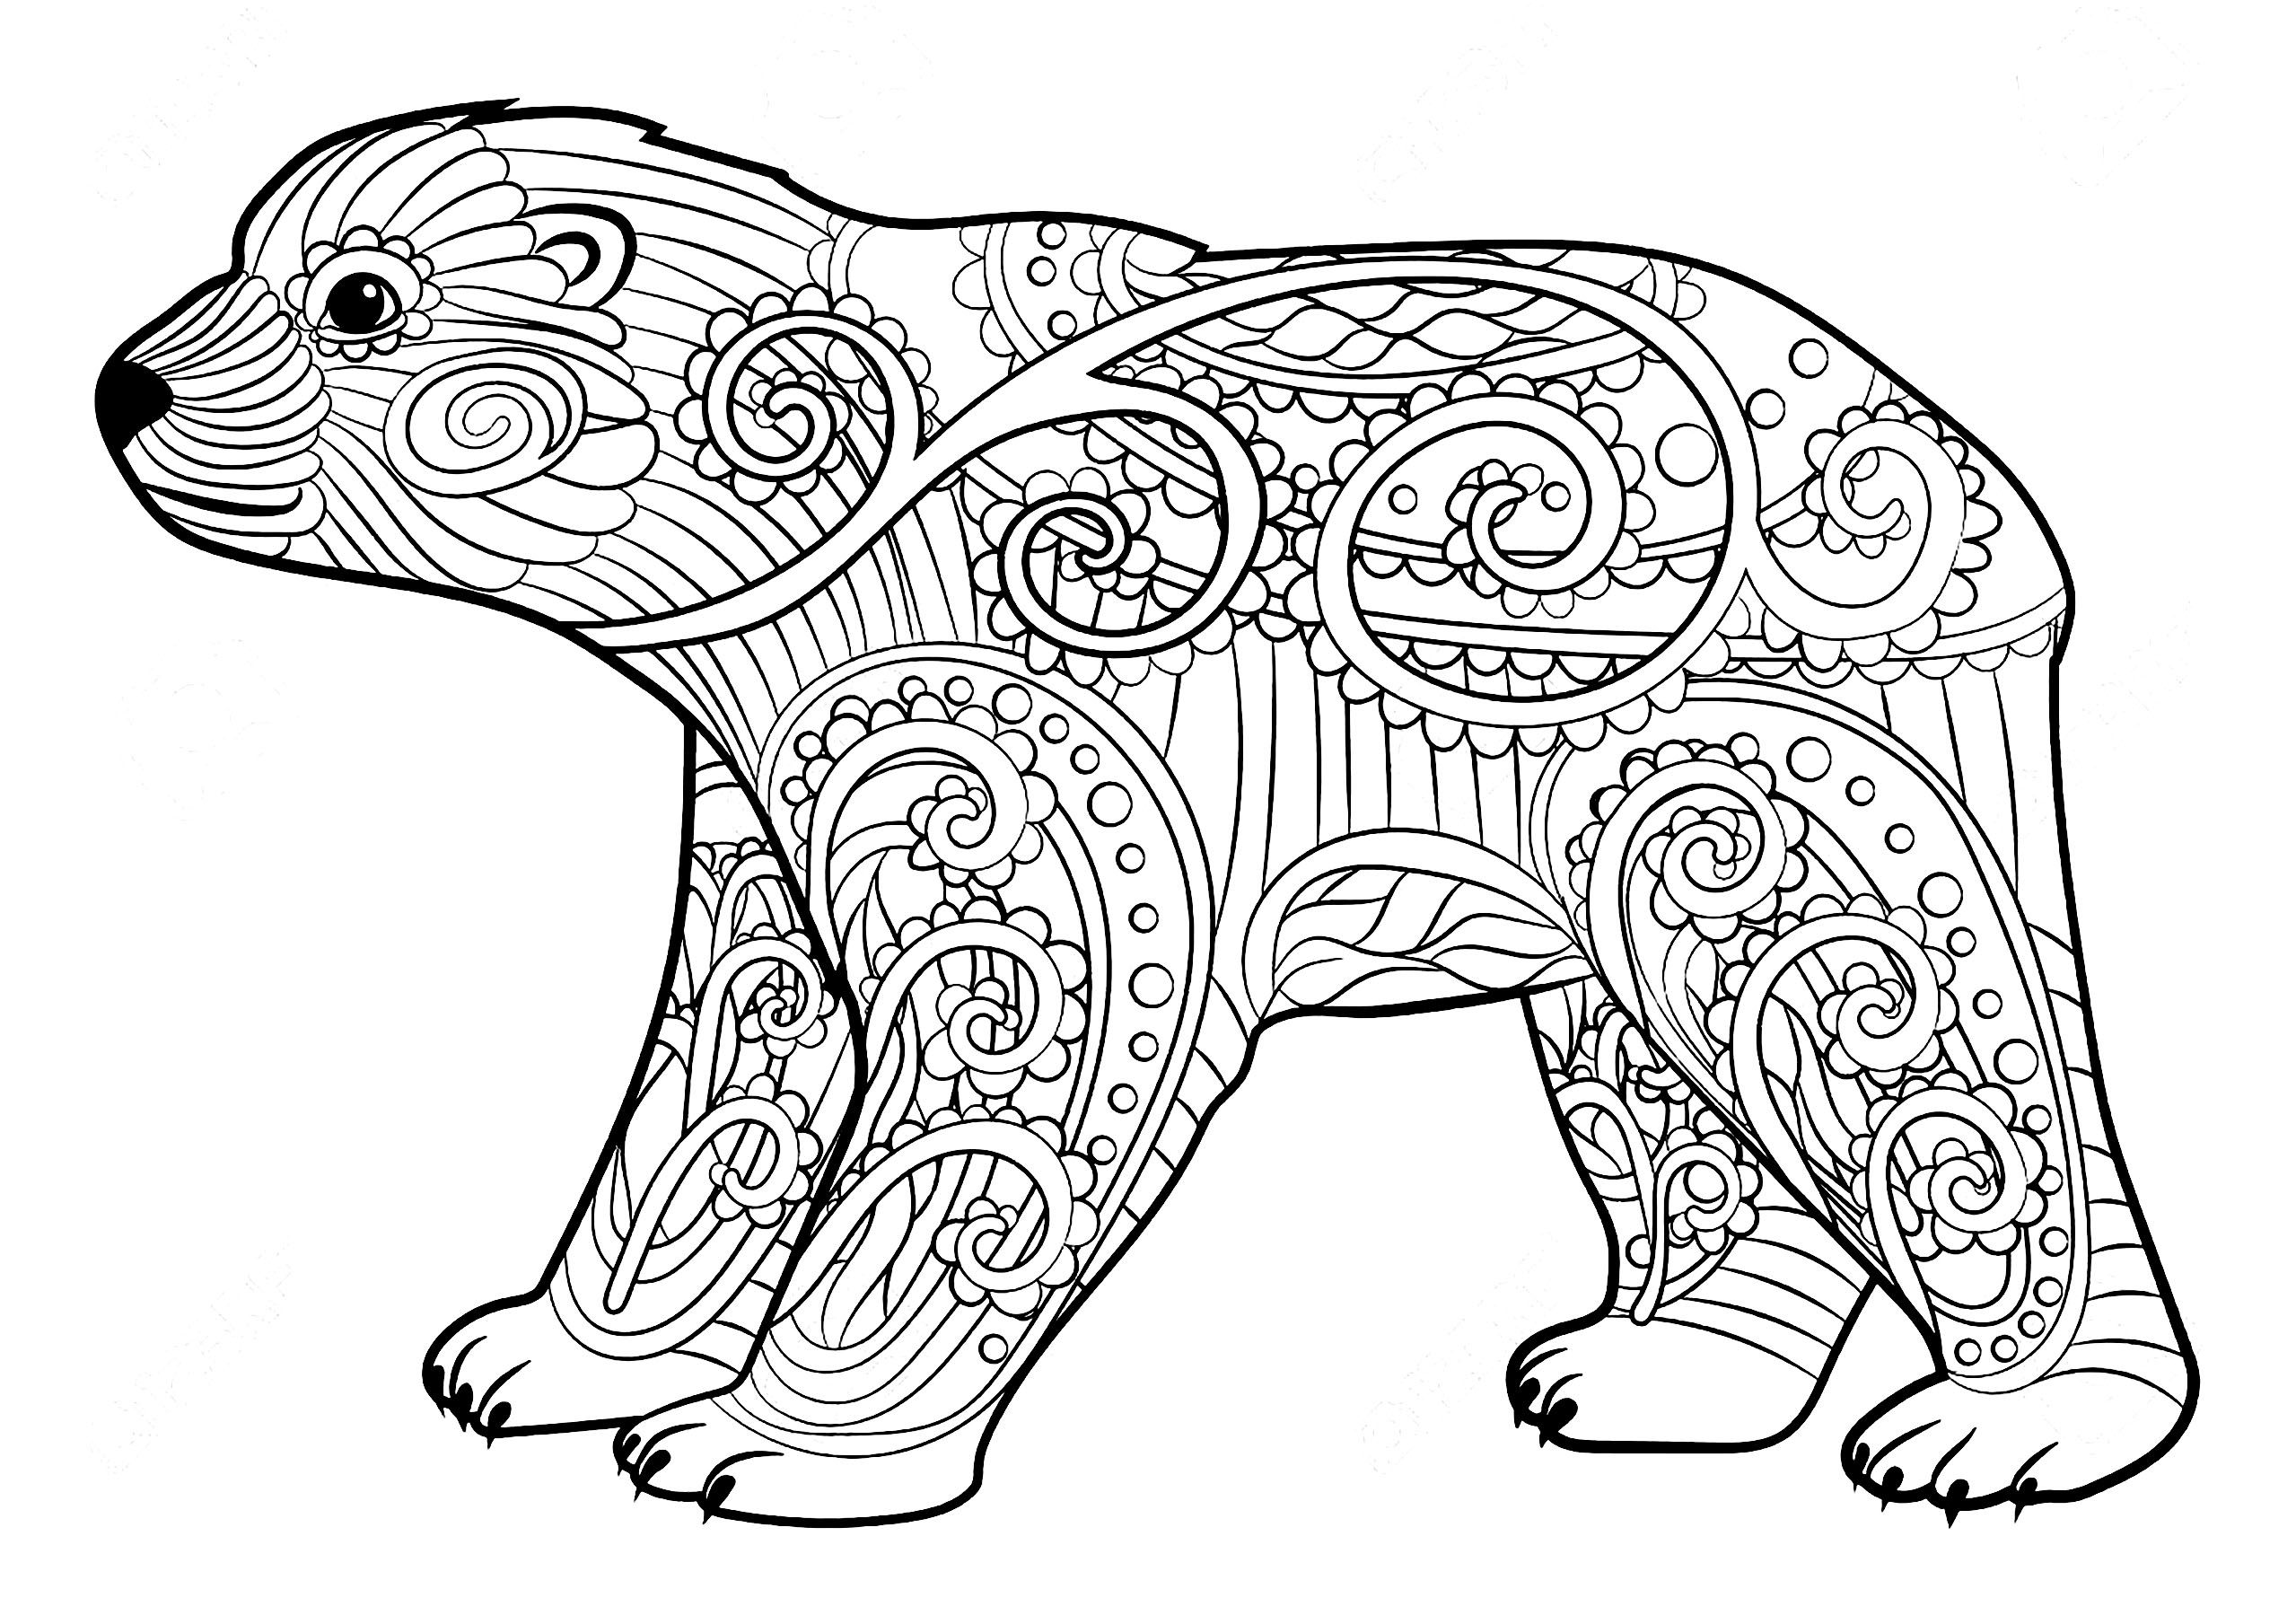 Young bear - Bears Coloring Pages for Adults - Just Color ...